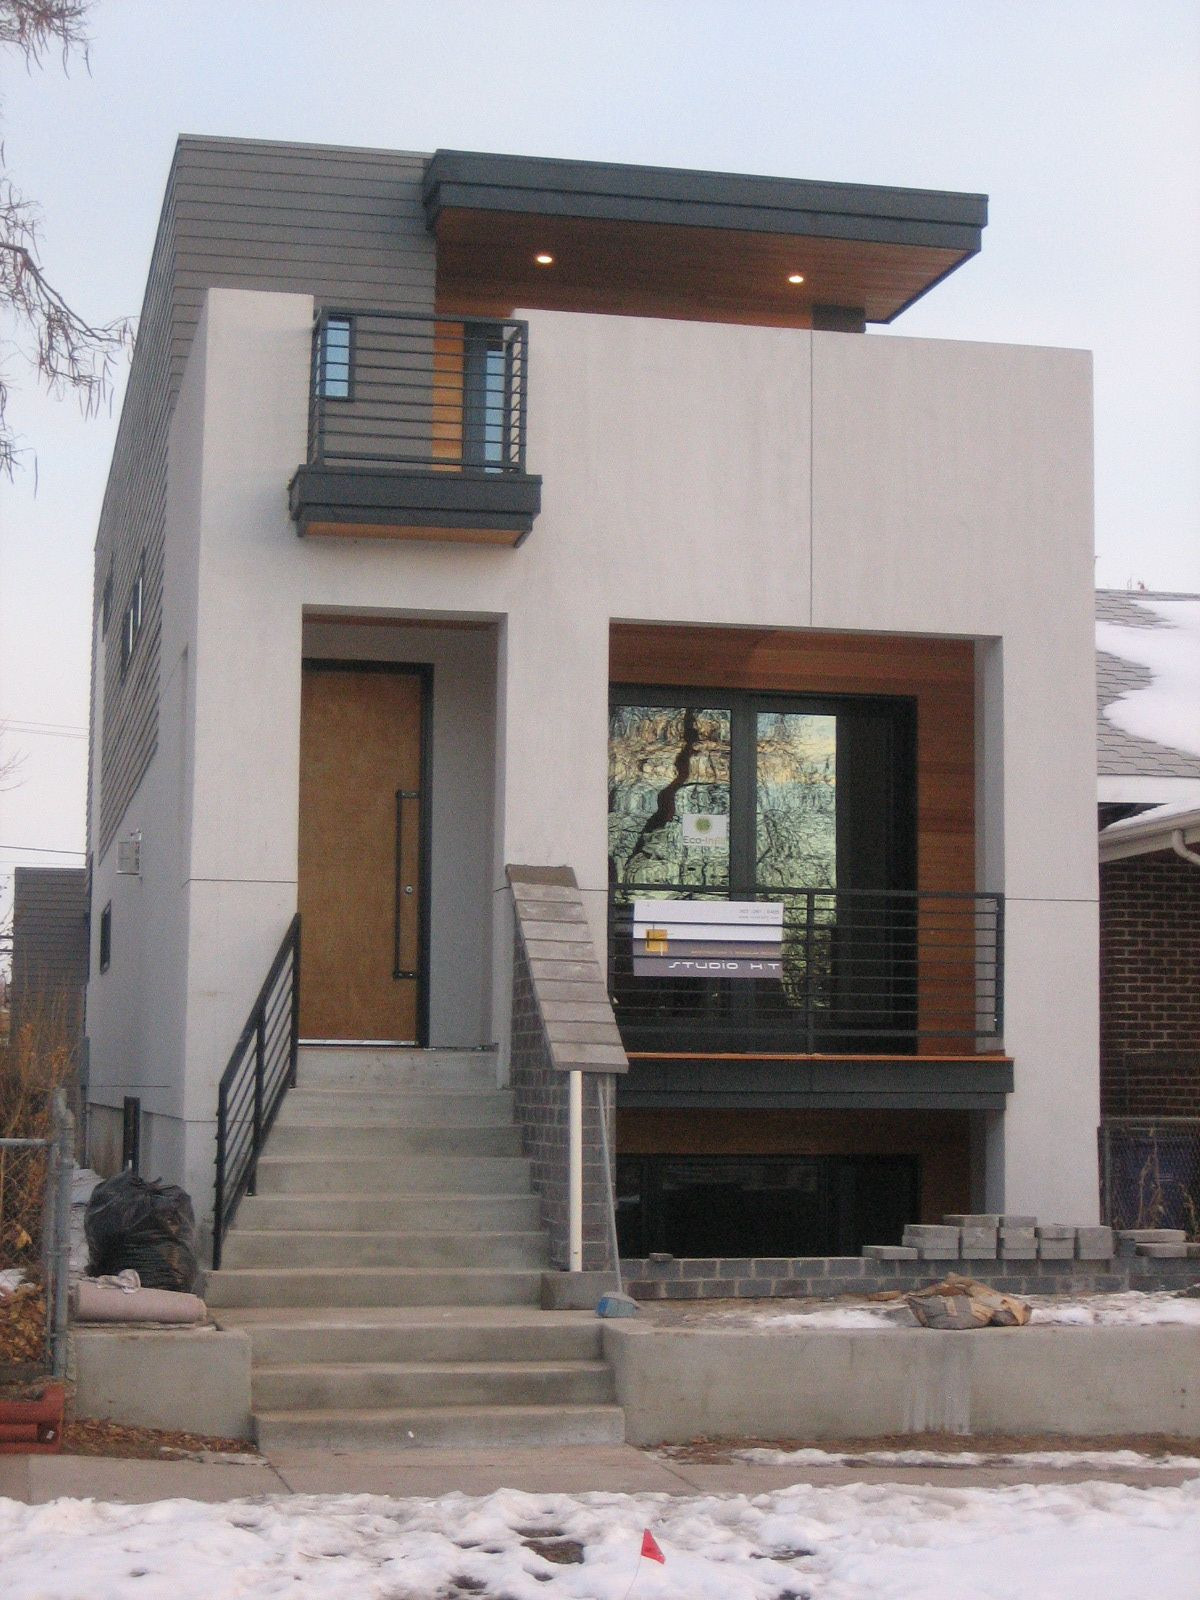 Modern Type House Design Inspirational Architecture Inspiration Admirable Small House Types Plans